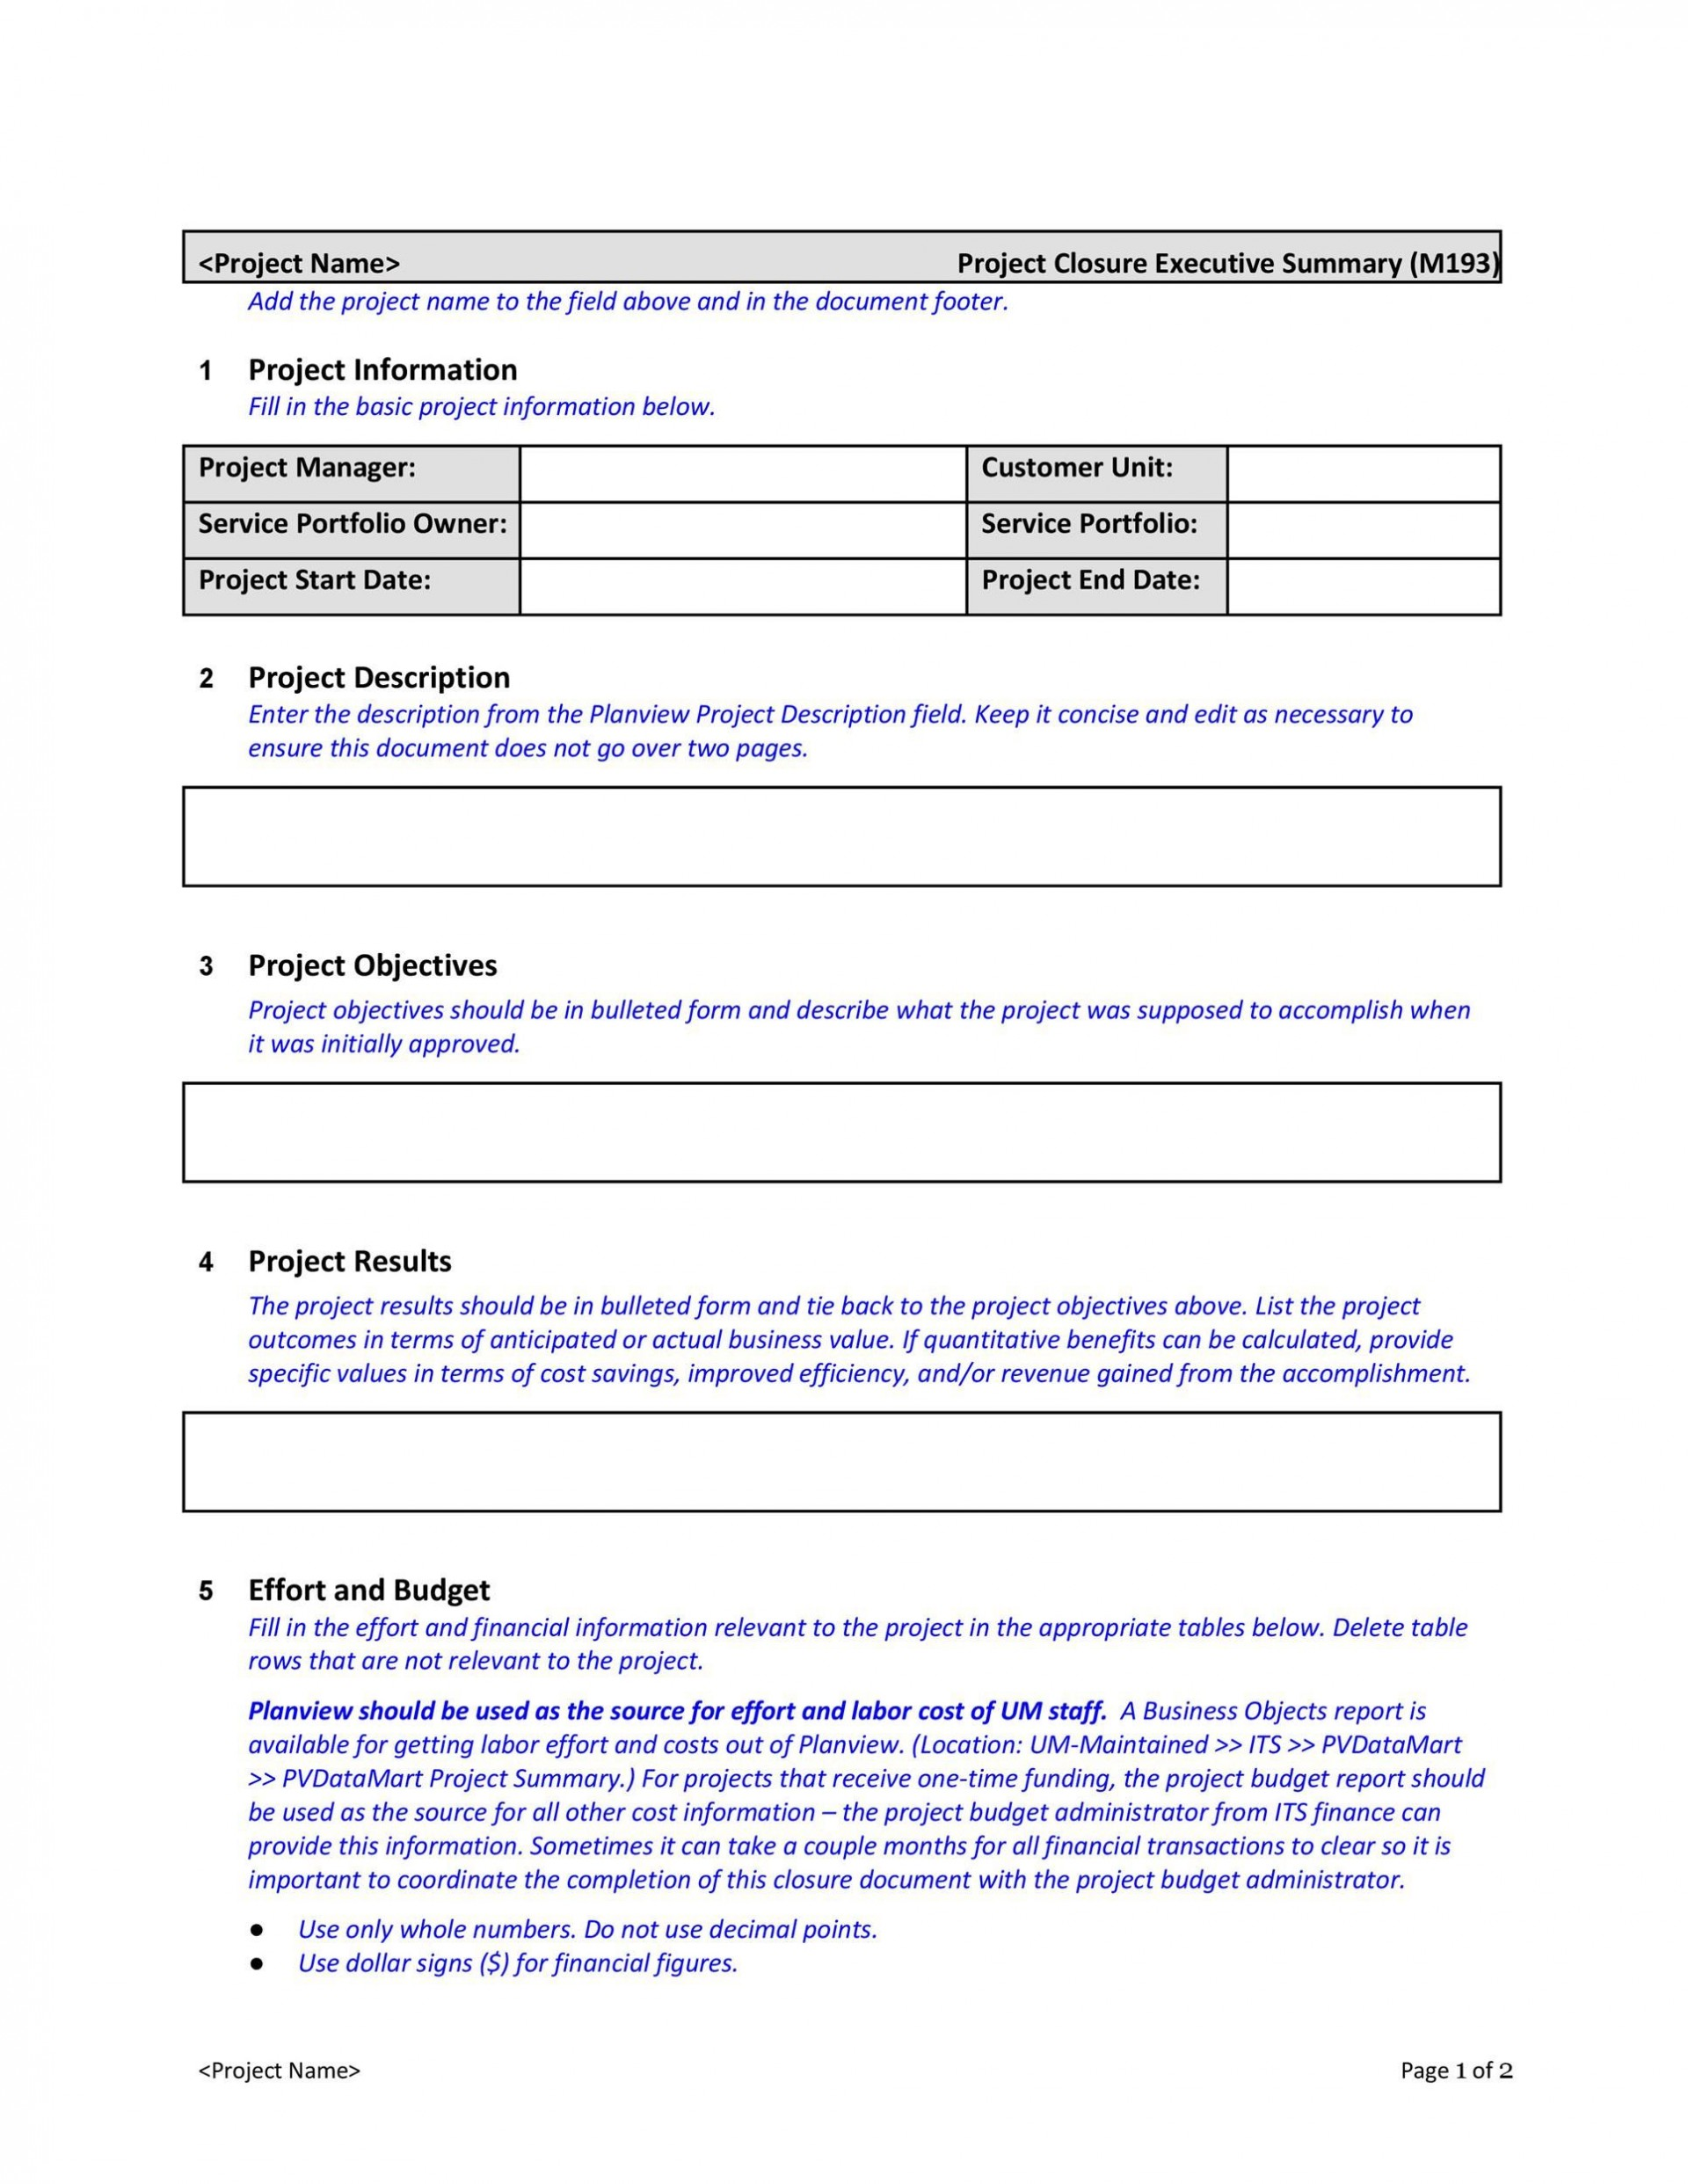 006 Awesome Executive Summary Word Template Free Download High Resolution 1920